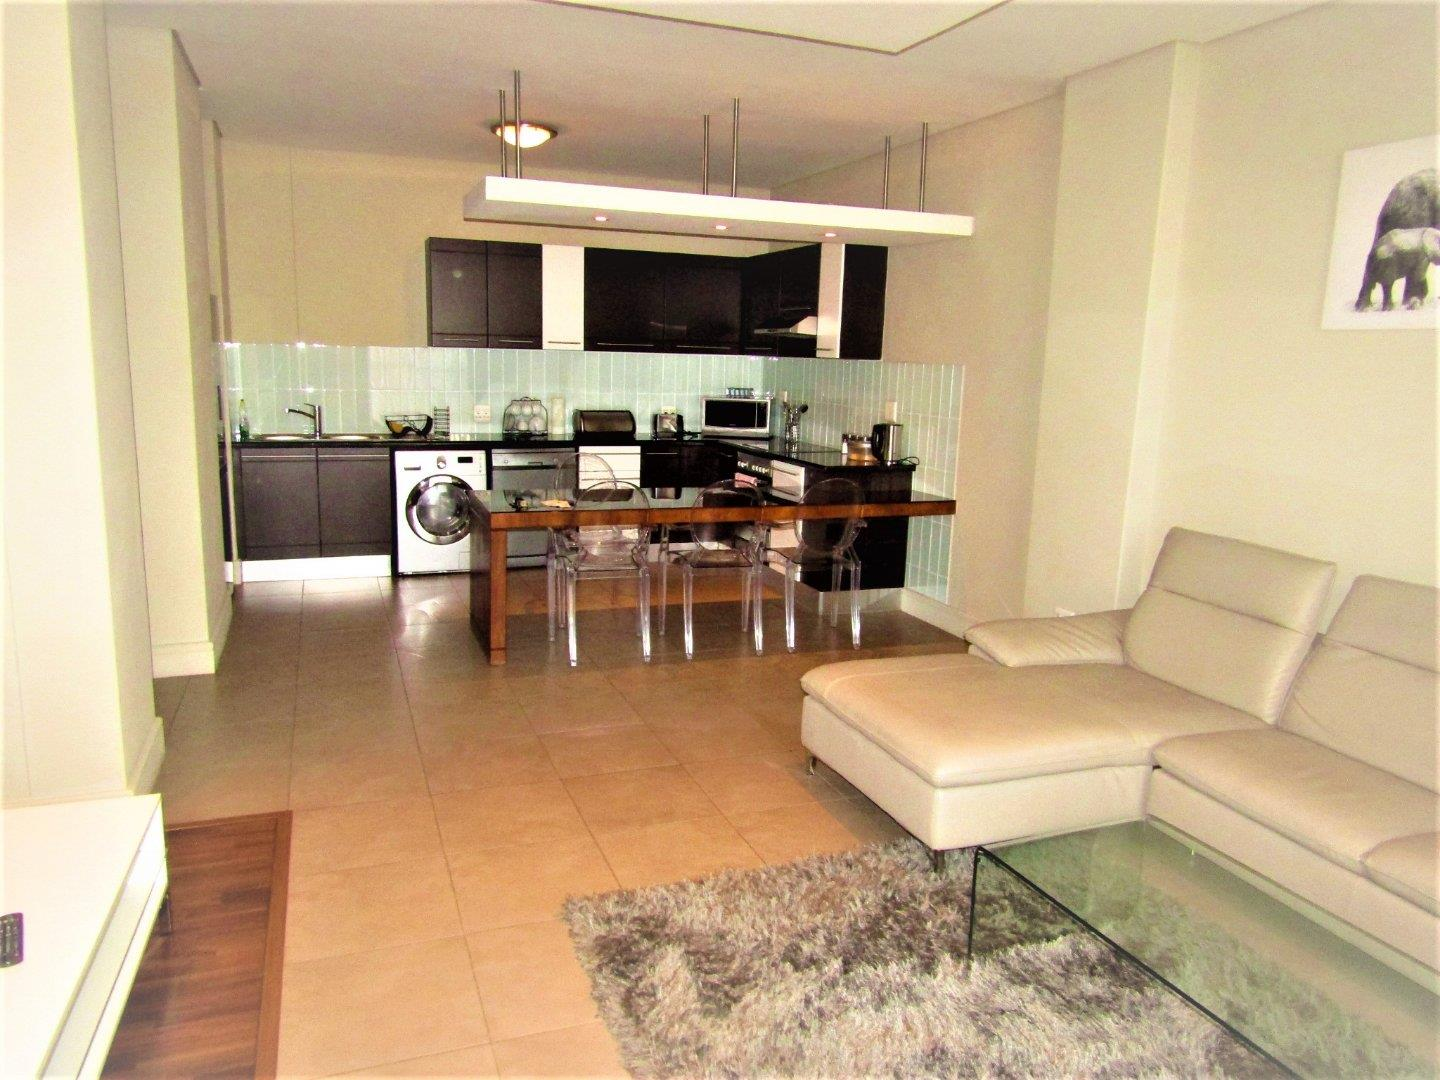 2 Bedroom Apartment / Flat to Rent in Bedfordview